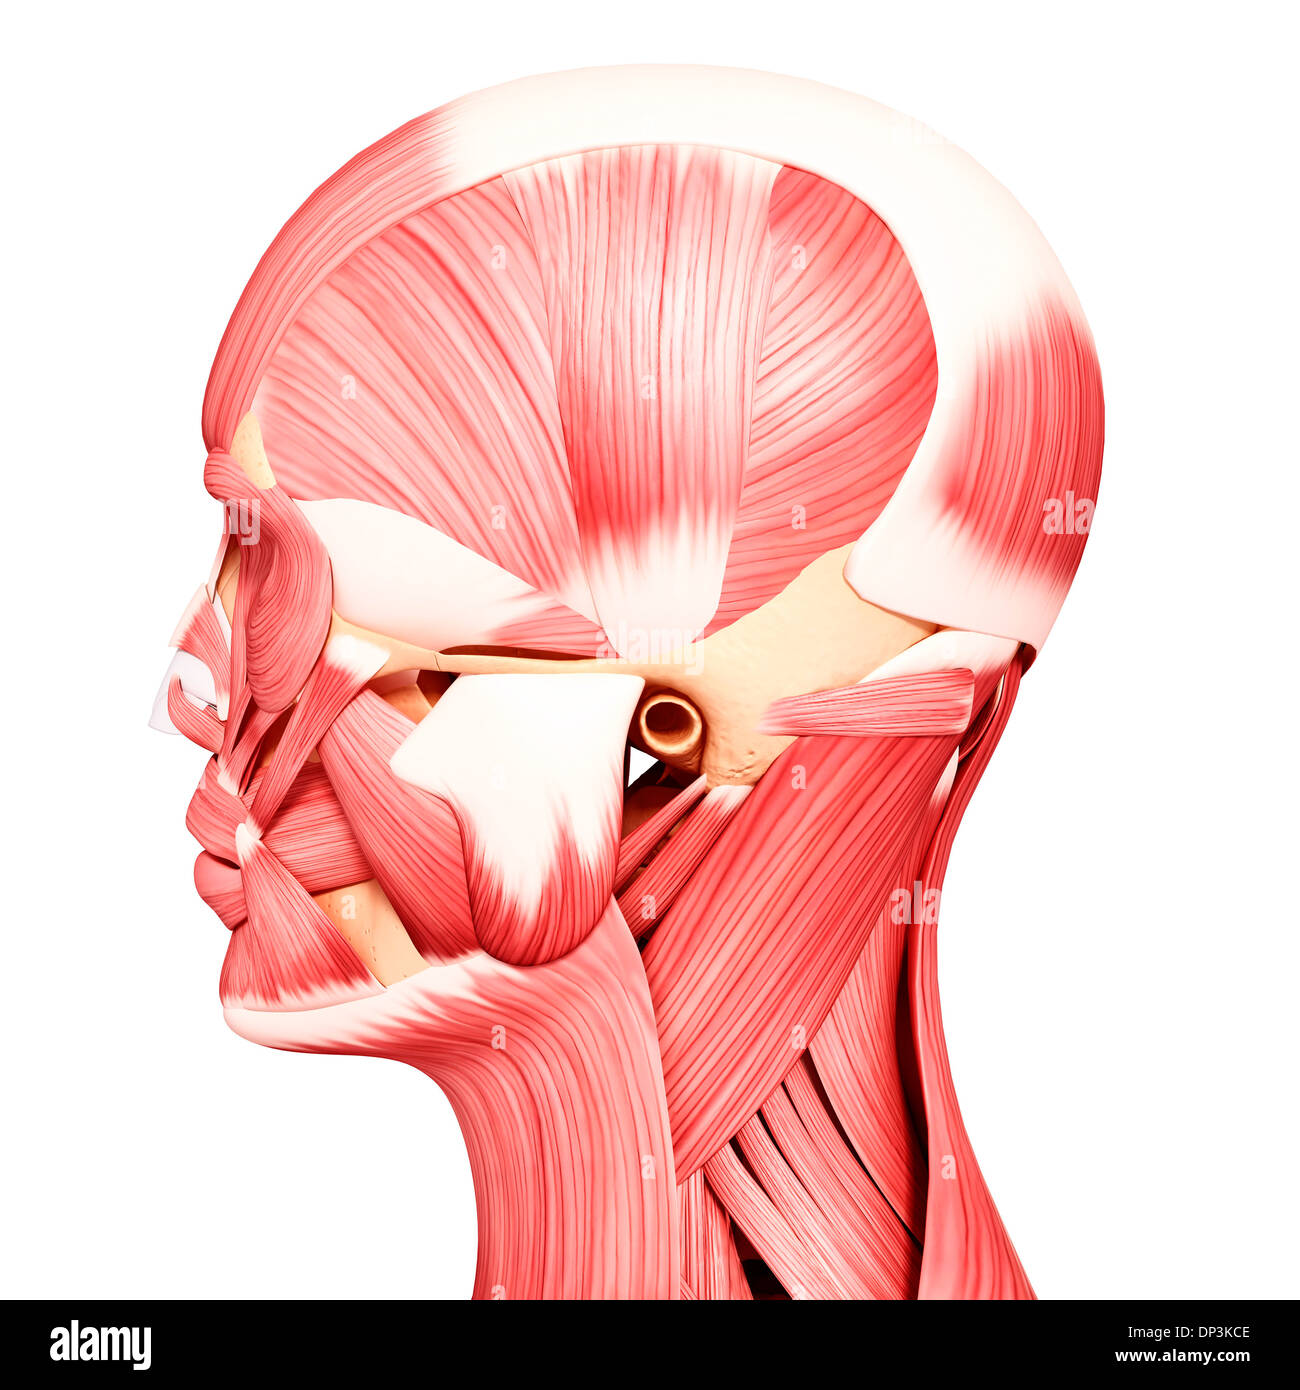 Human head musculature, artwork Stock Photo